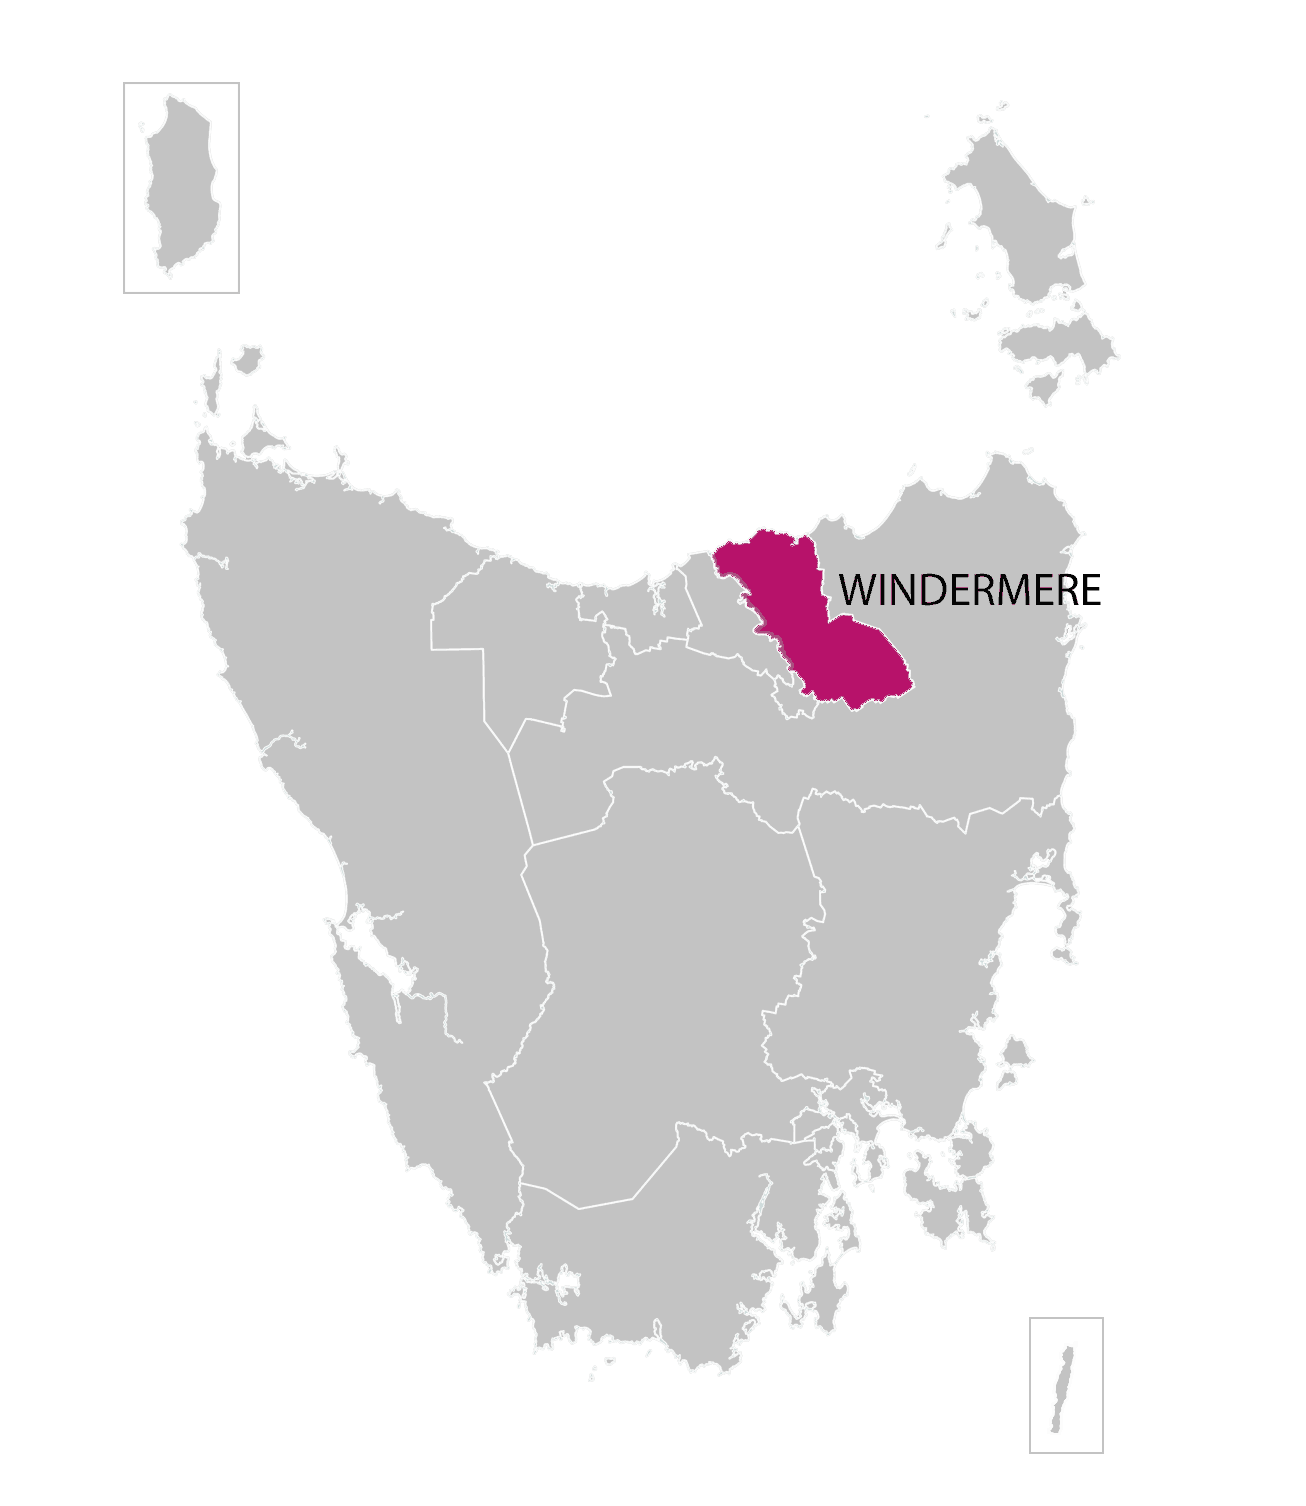 Windermere division highlighted on illustrated map of Tasmania